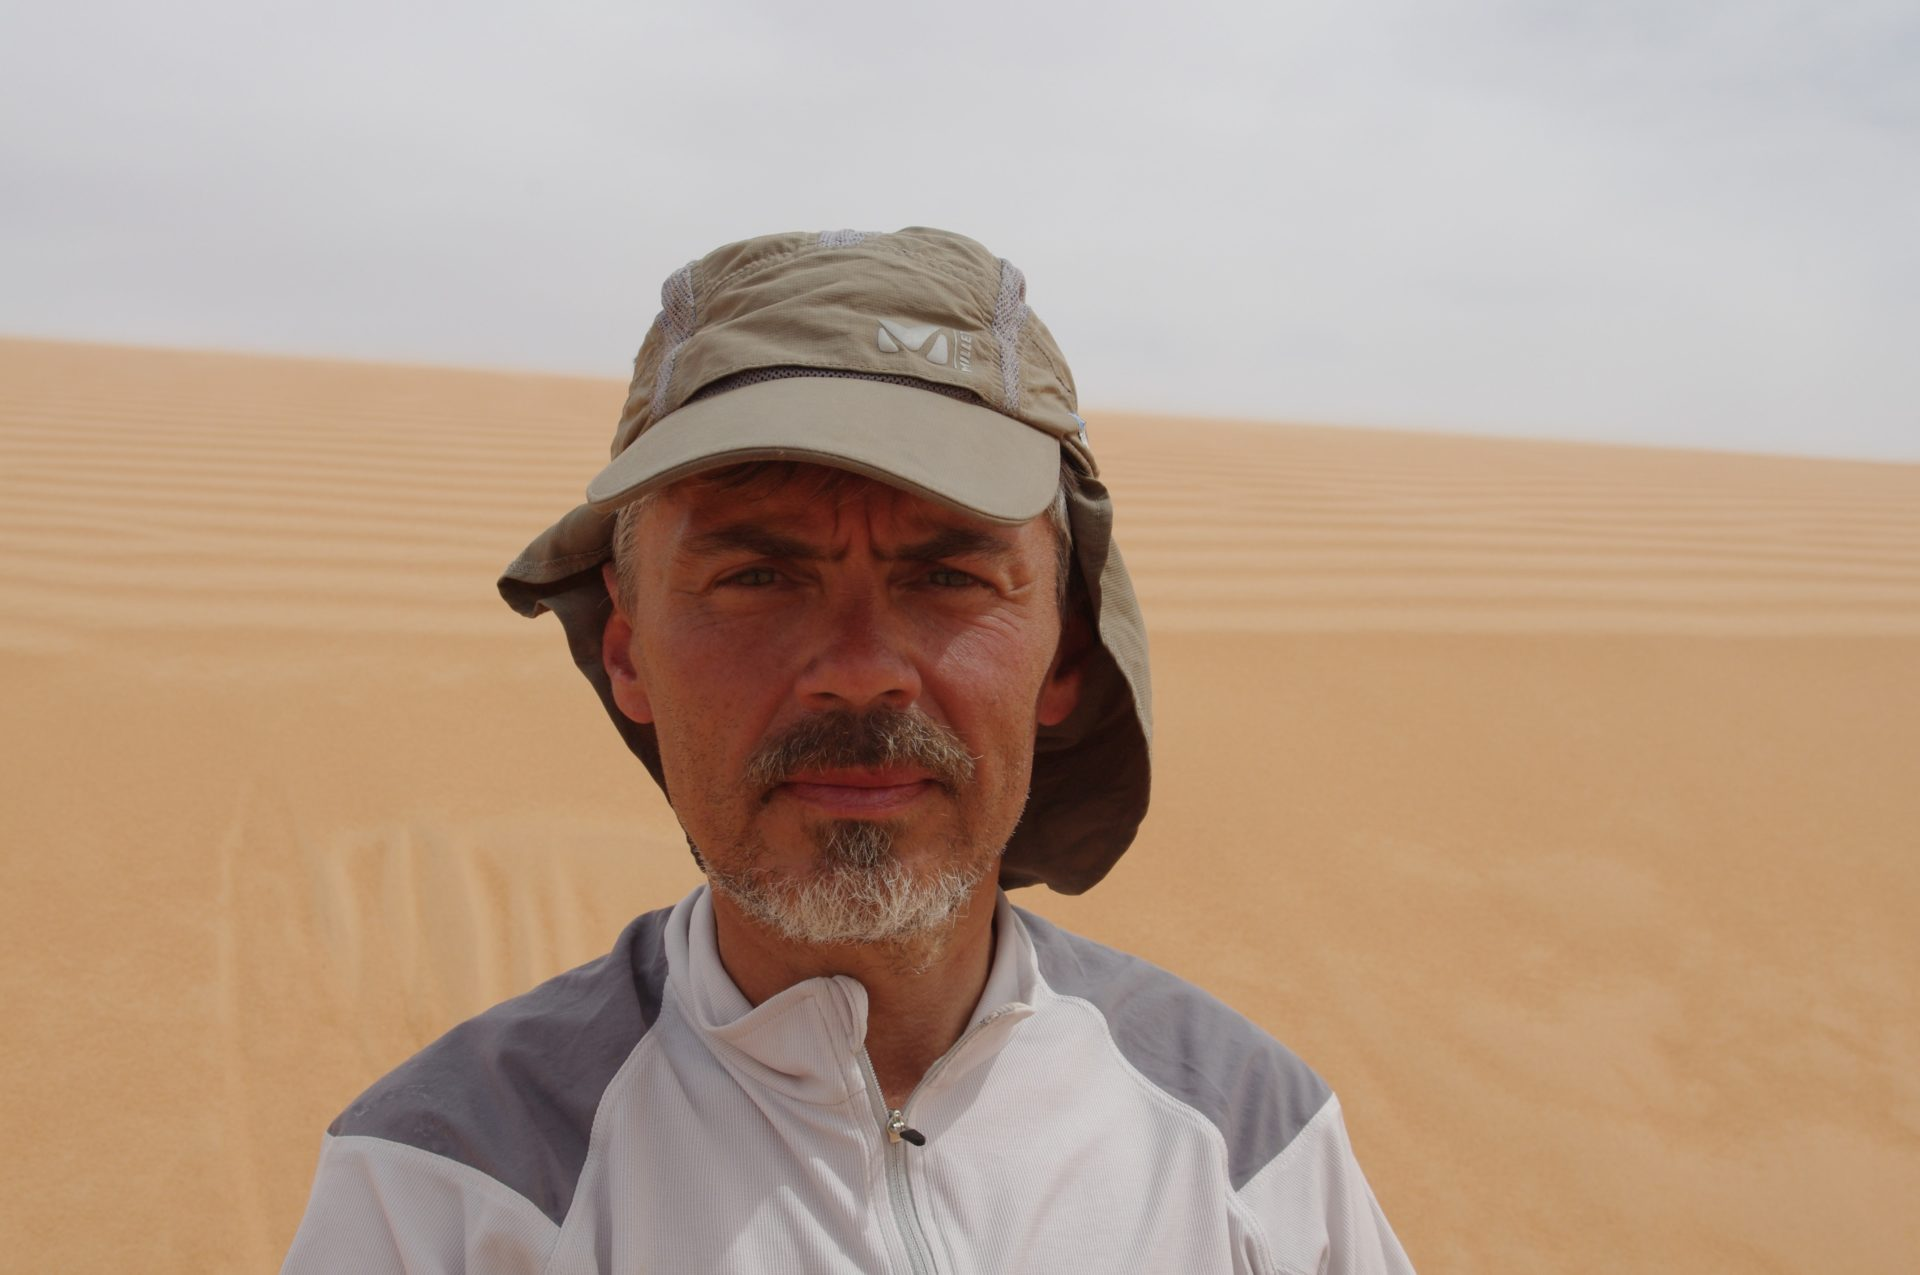 Jukka while crossing the Sahara Desert